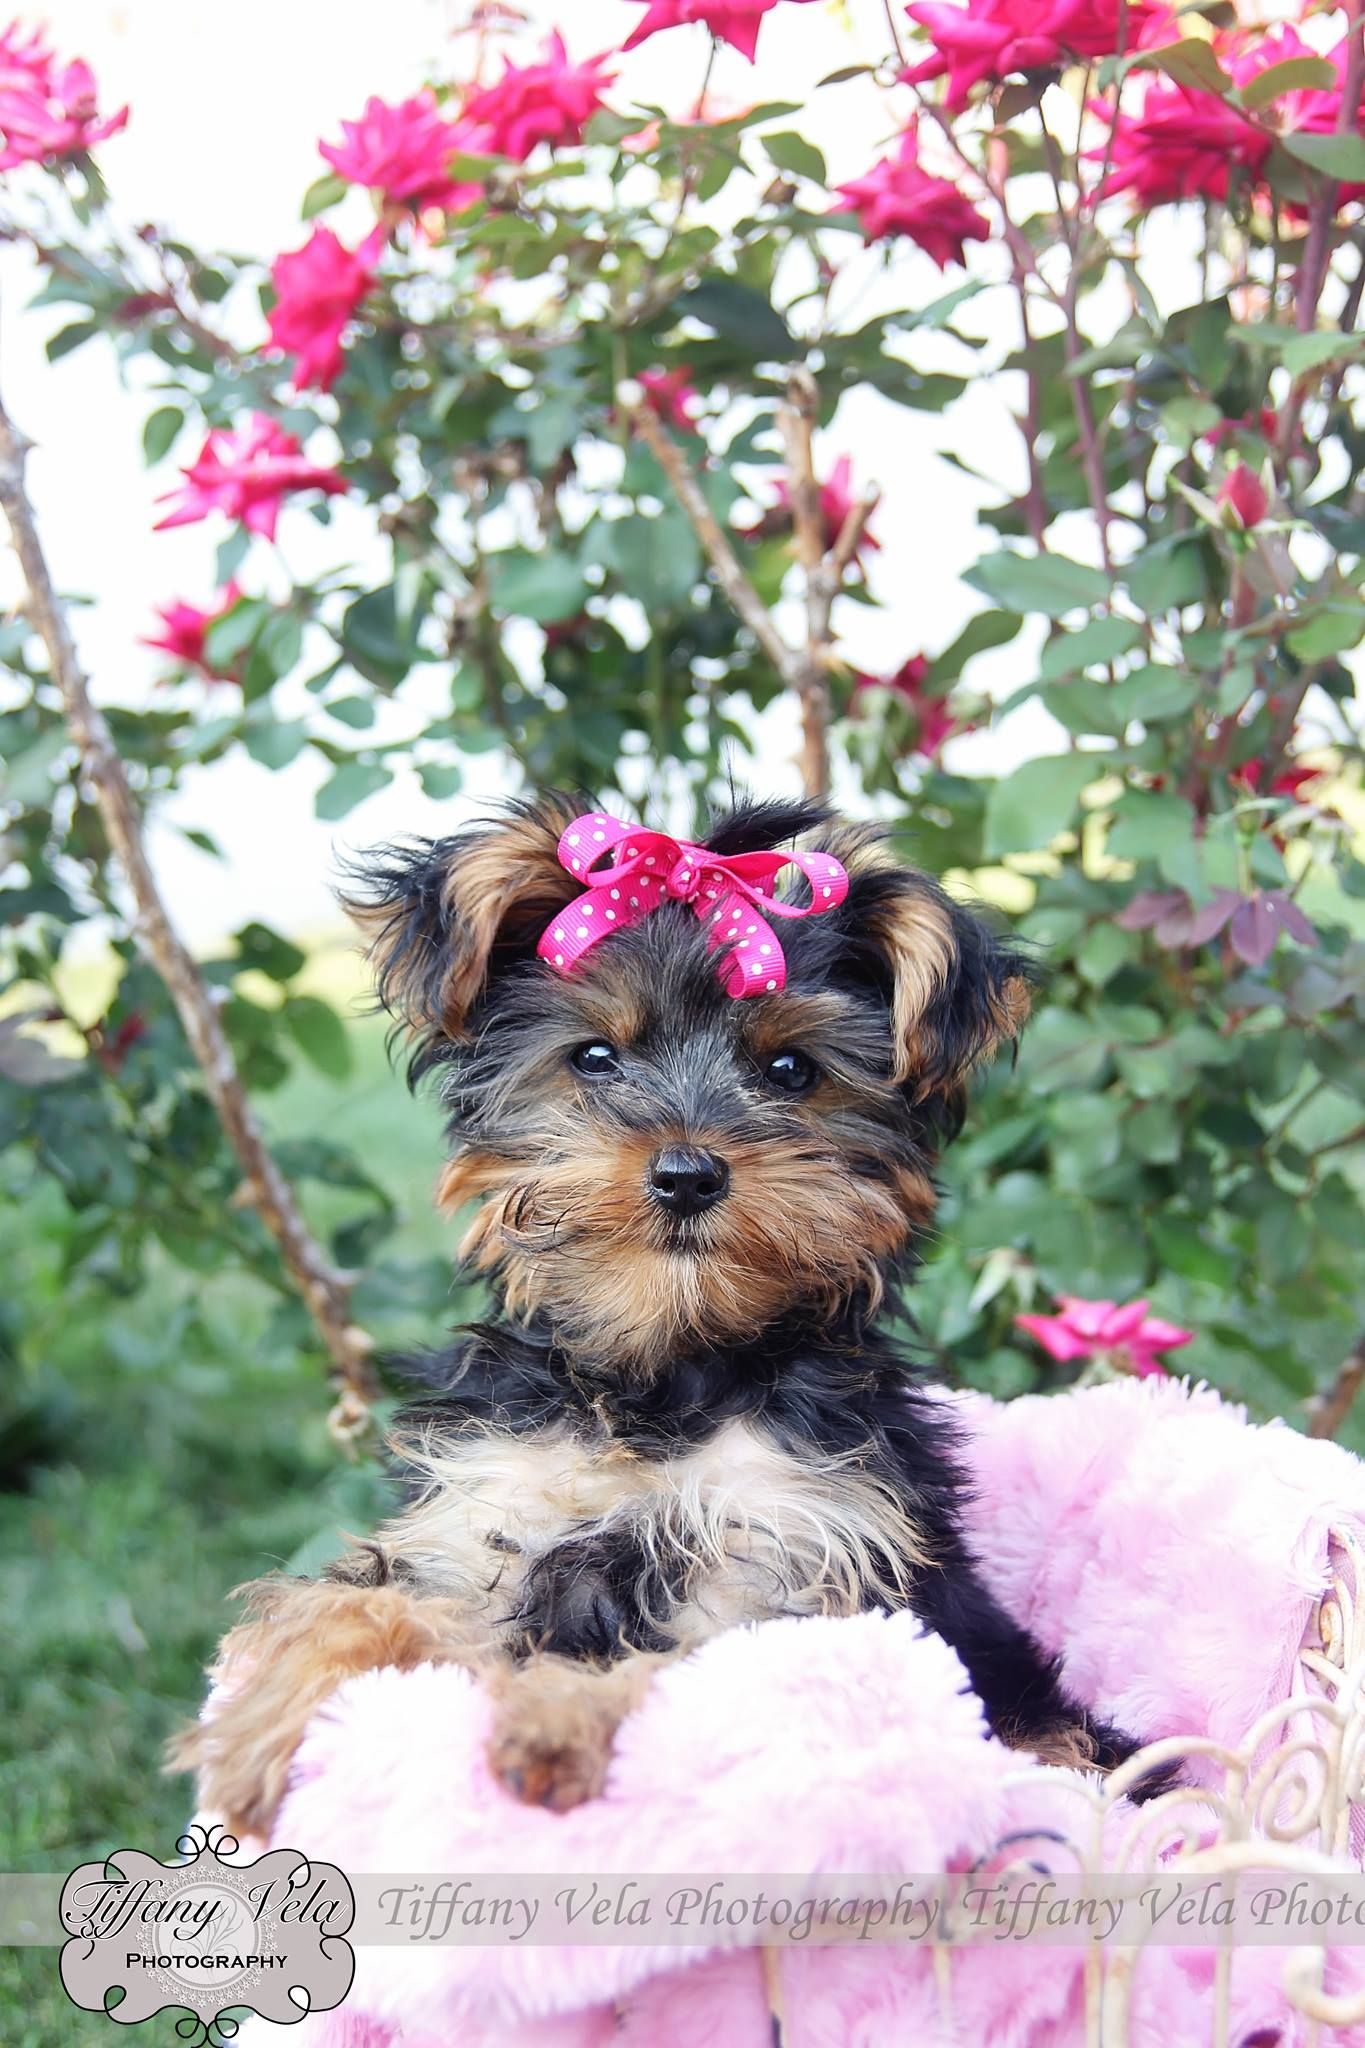 My Yorkie Puppy Lily For Her First Photoshoot Isn T She The Cutest Little Thing With Her Lit Yorkshire Terrier Dog Yorkshire Terrier Puppies Yorkshire Terrier